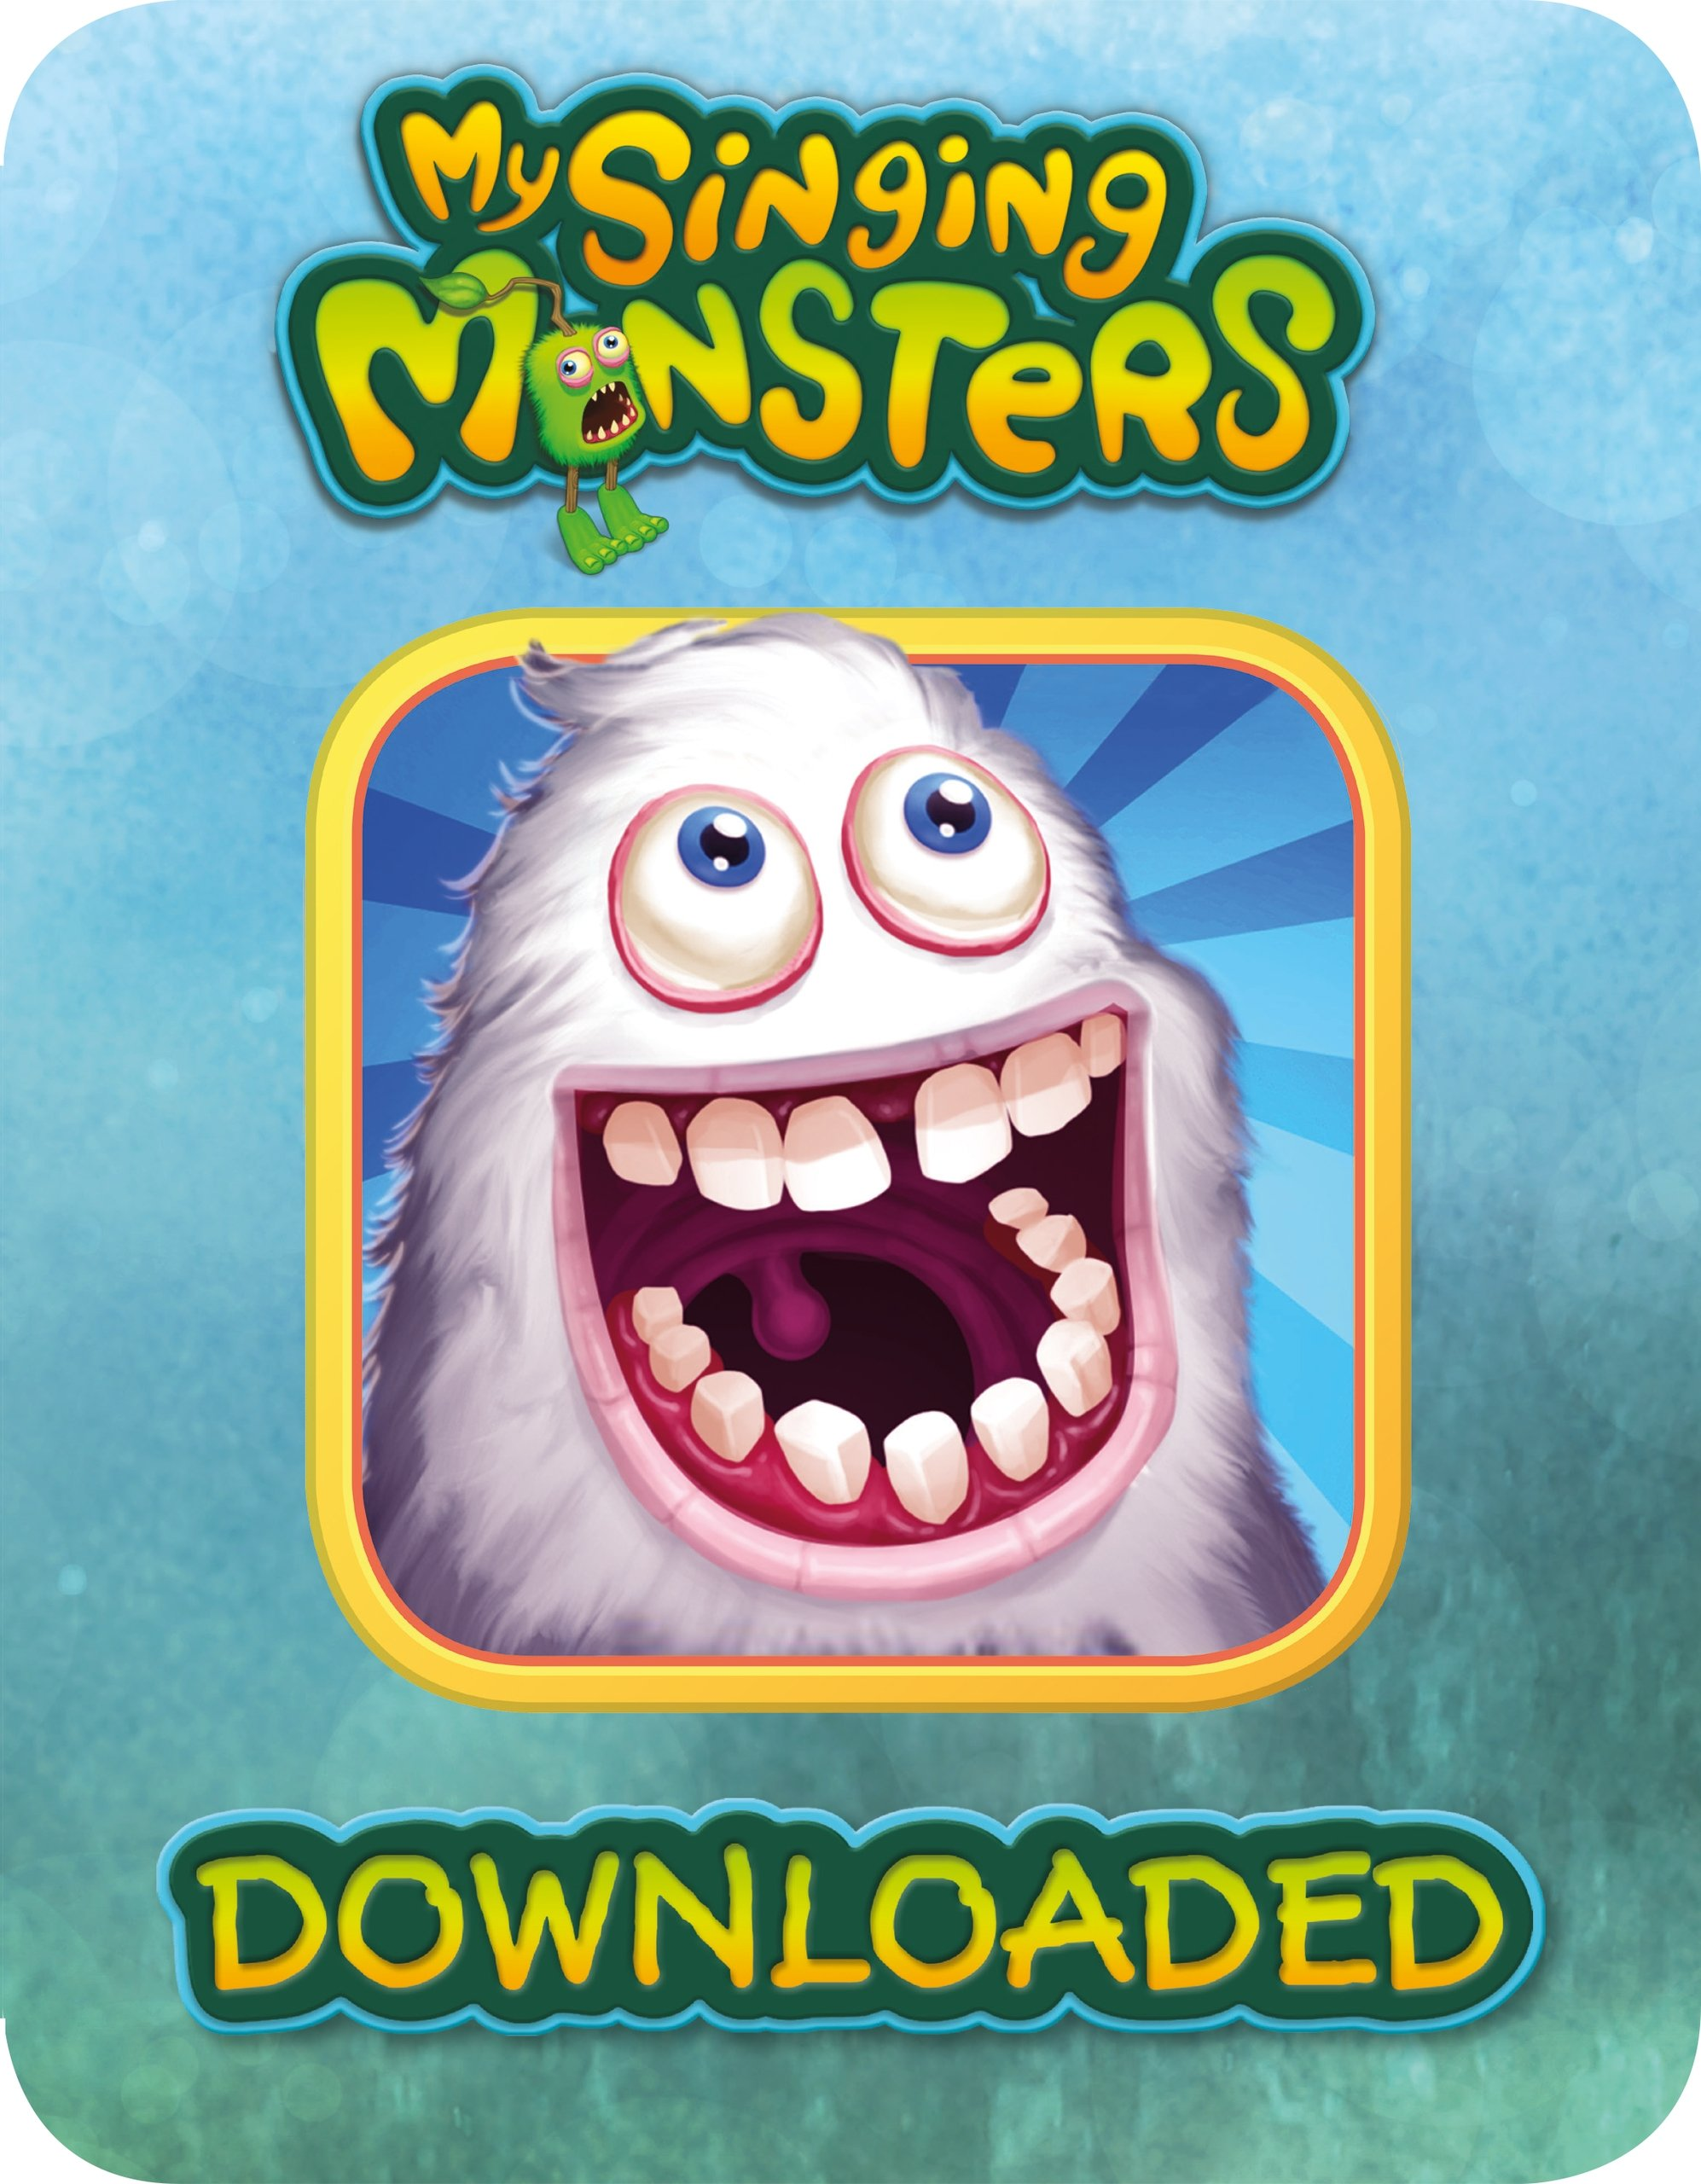 My Singing Monsters Downloaded PDF